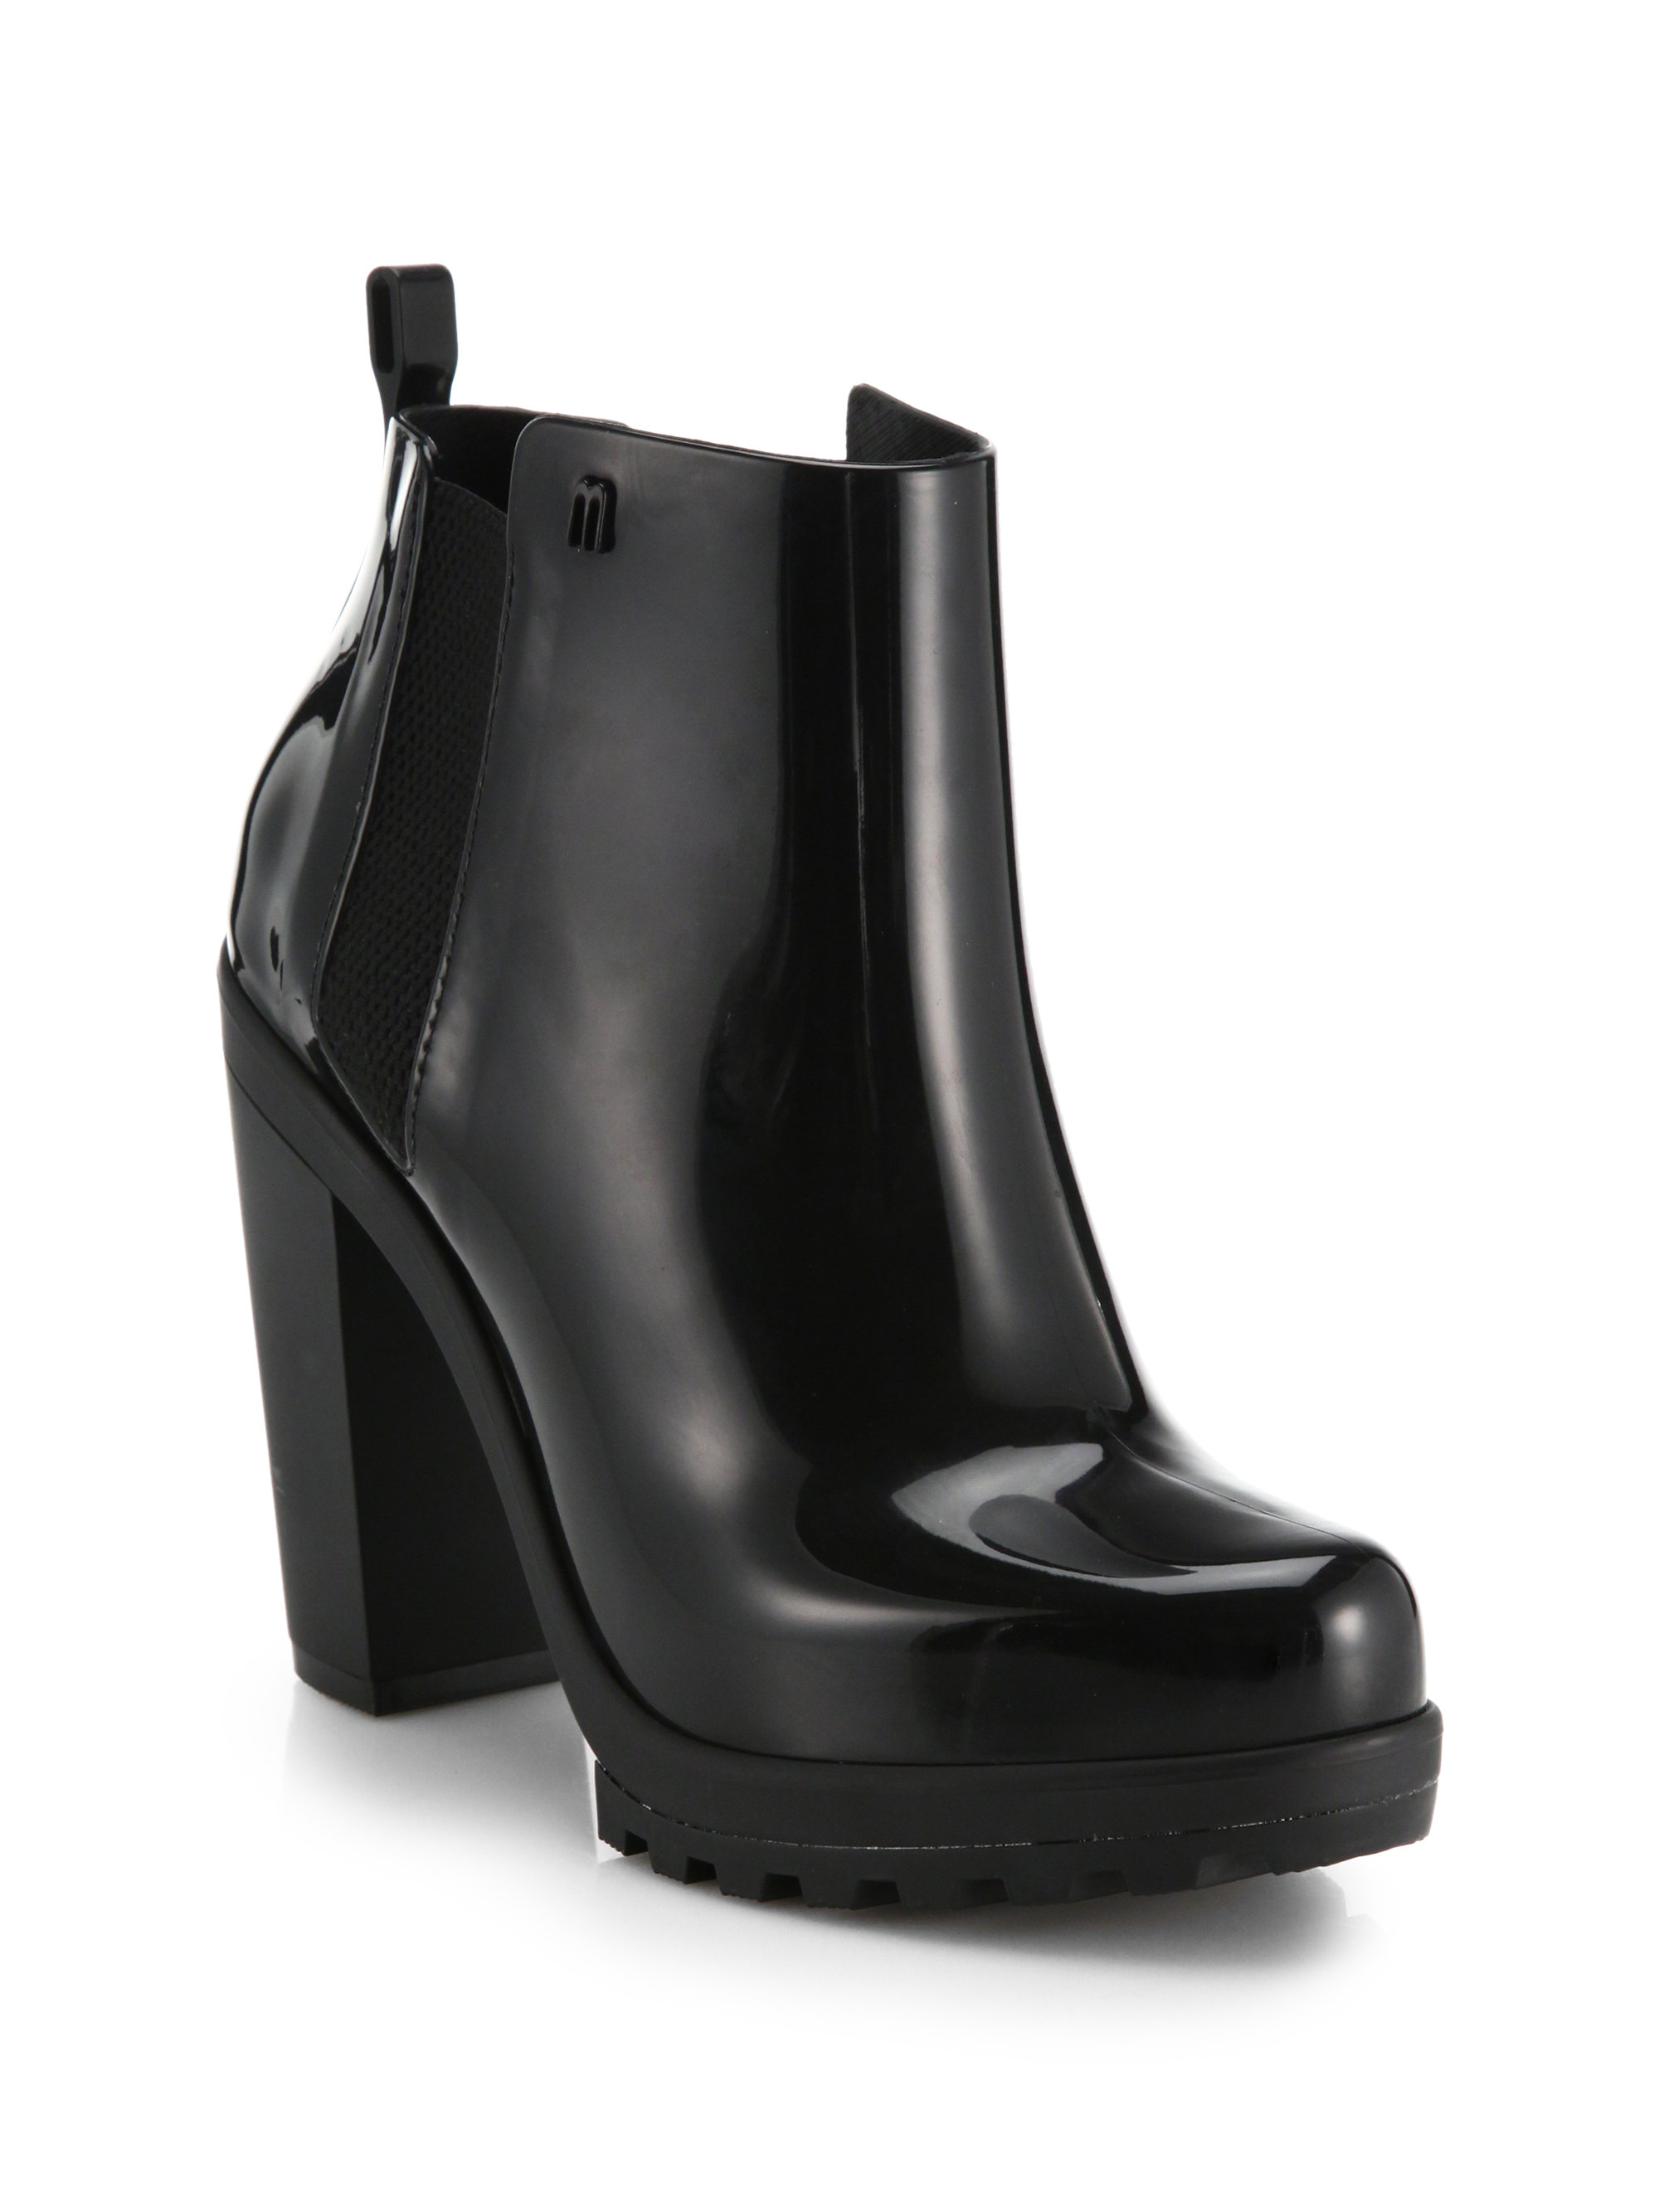 Melissa Soldier Ankle Boots in Black - Lyst